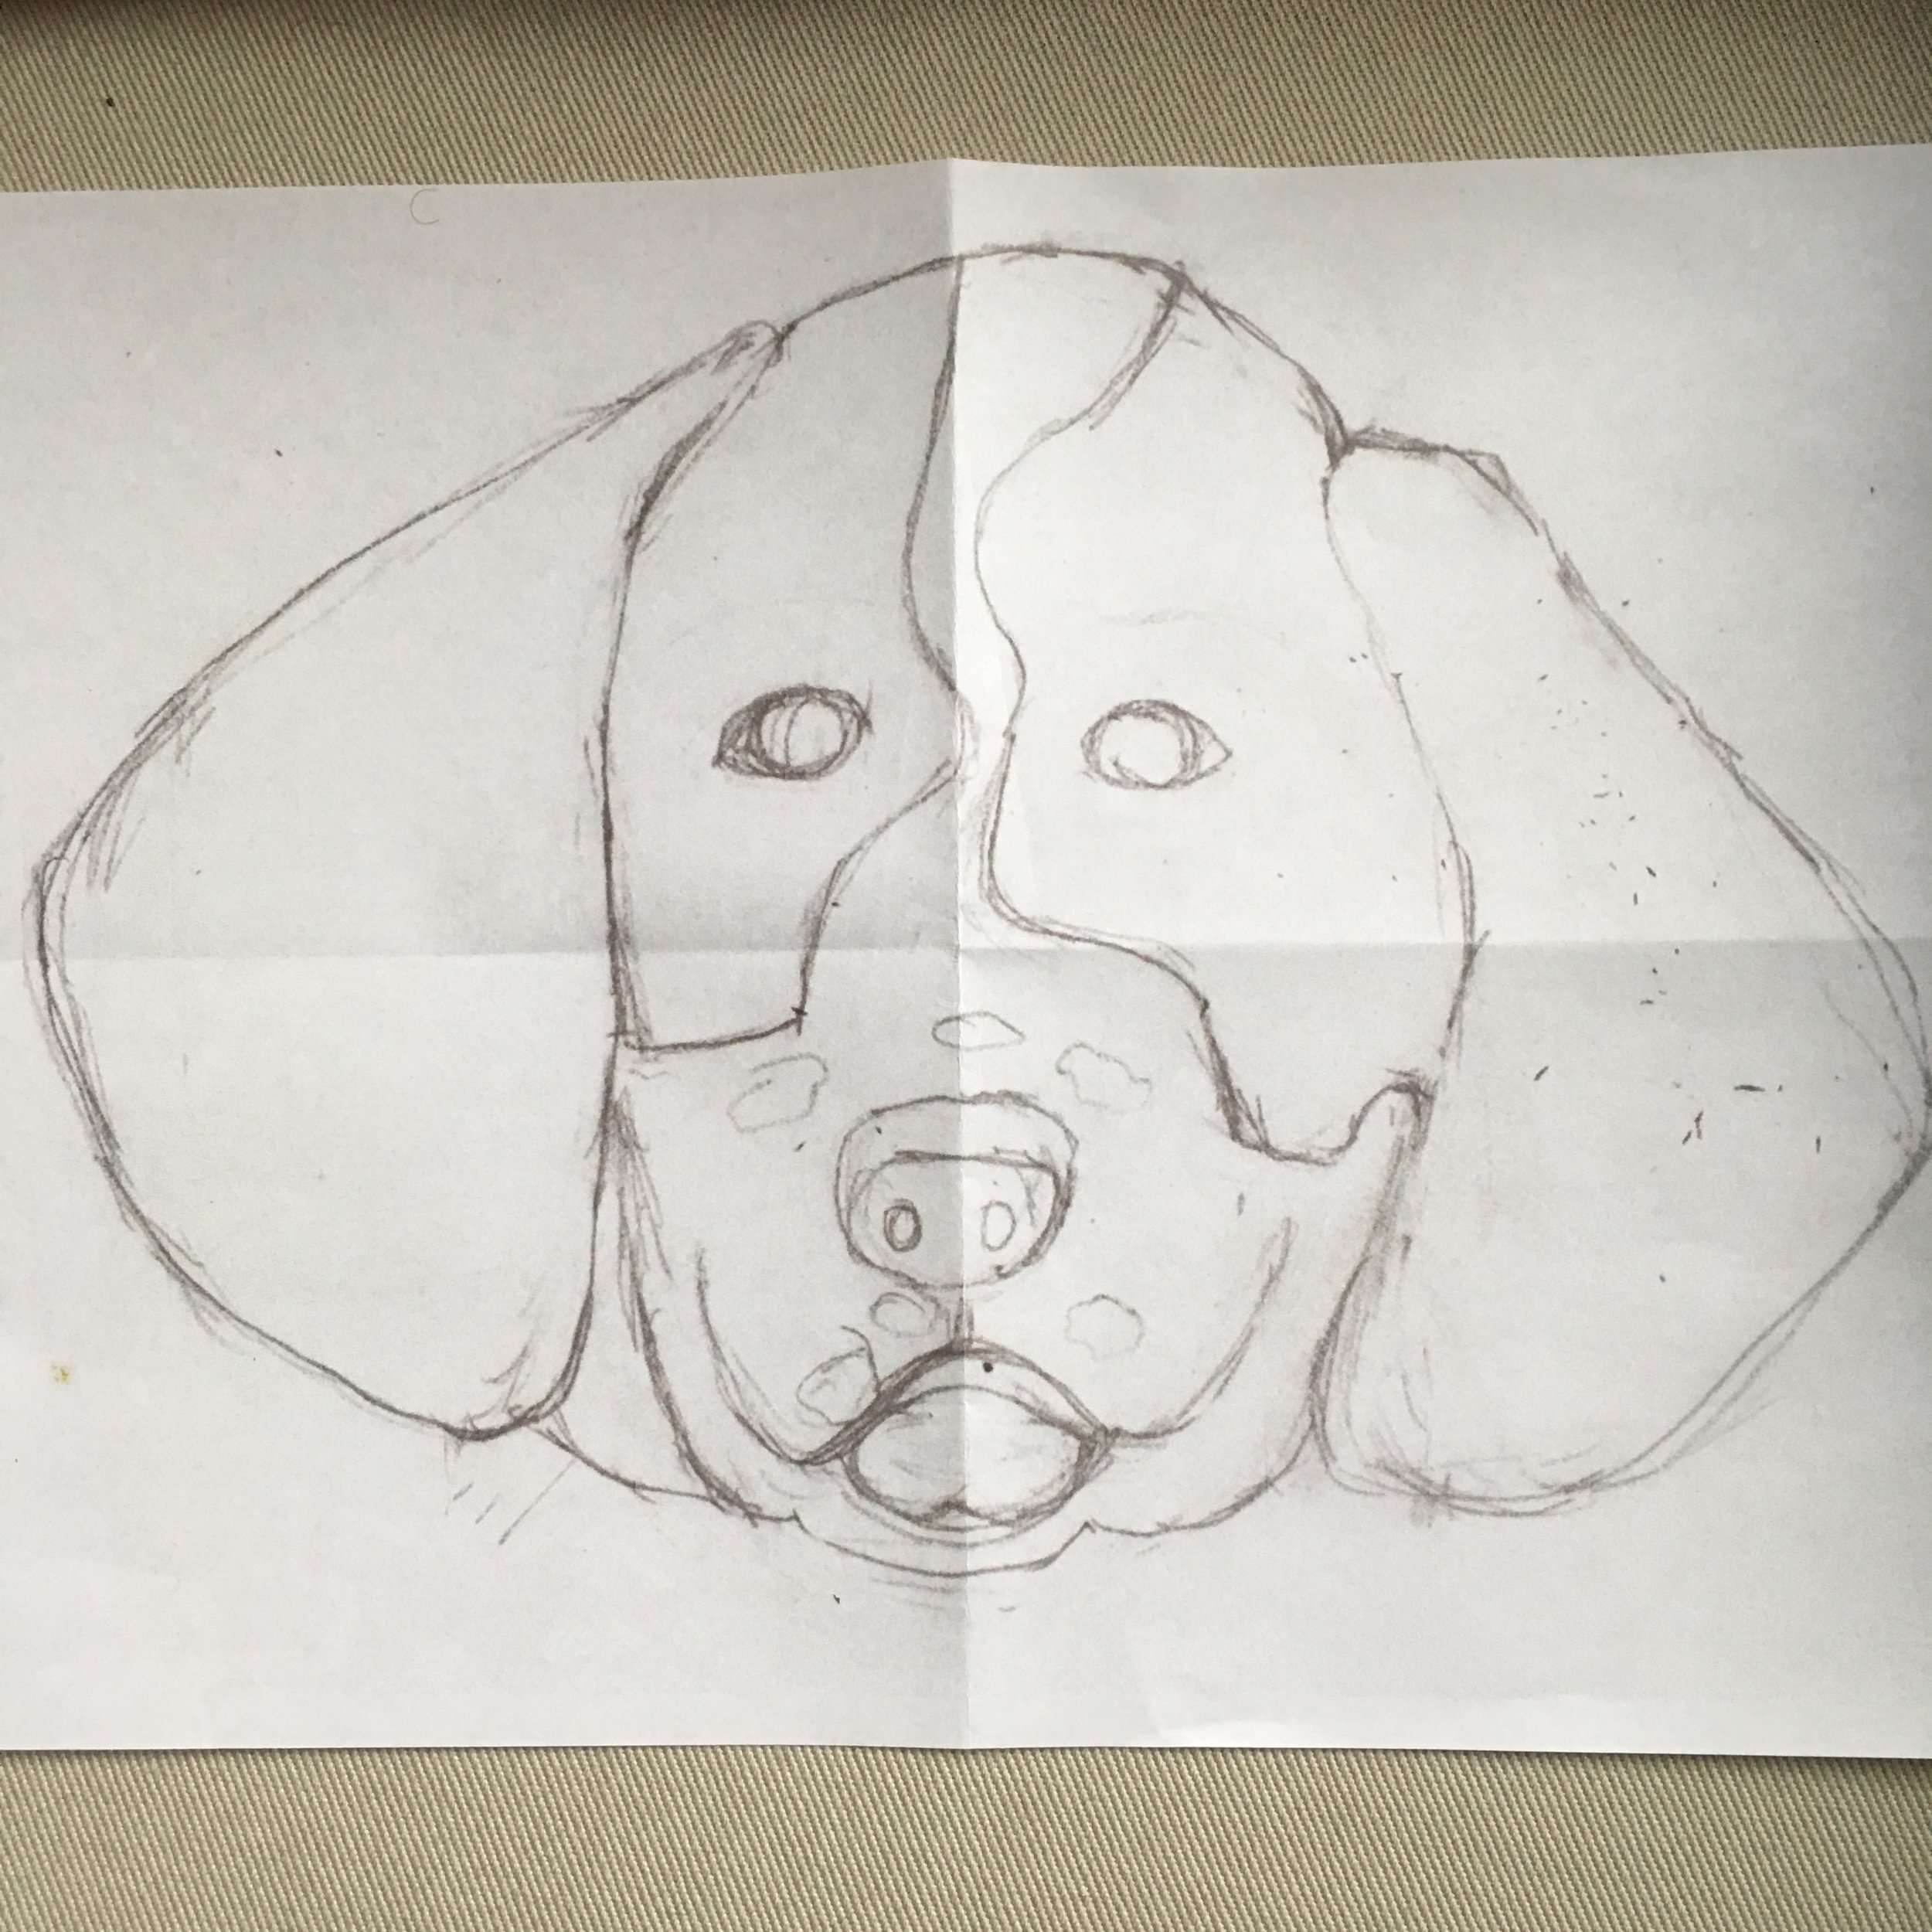 Springer drawing, folded in 4 quadrants to aid placement of the components on the pillow cover